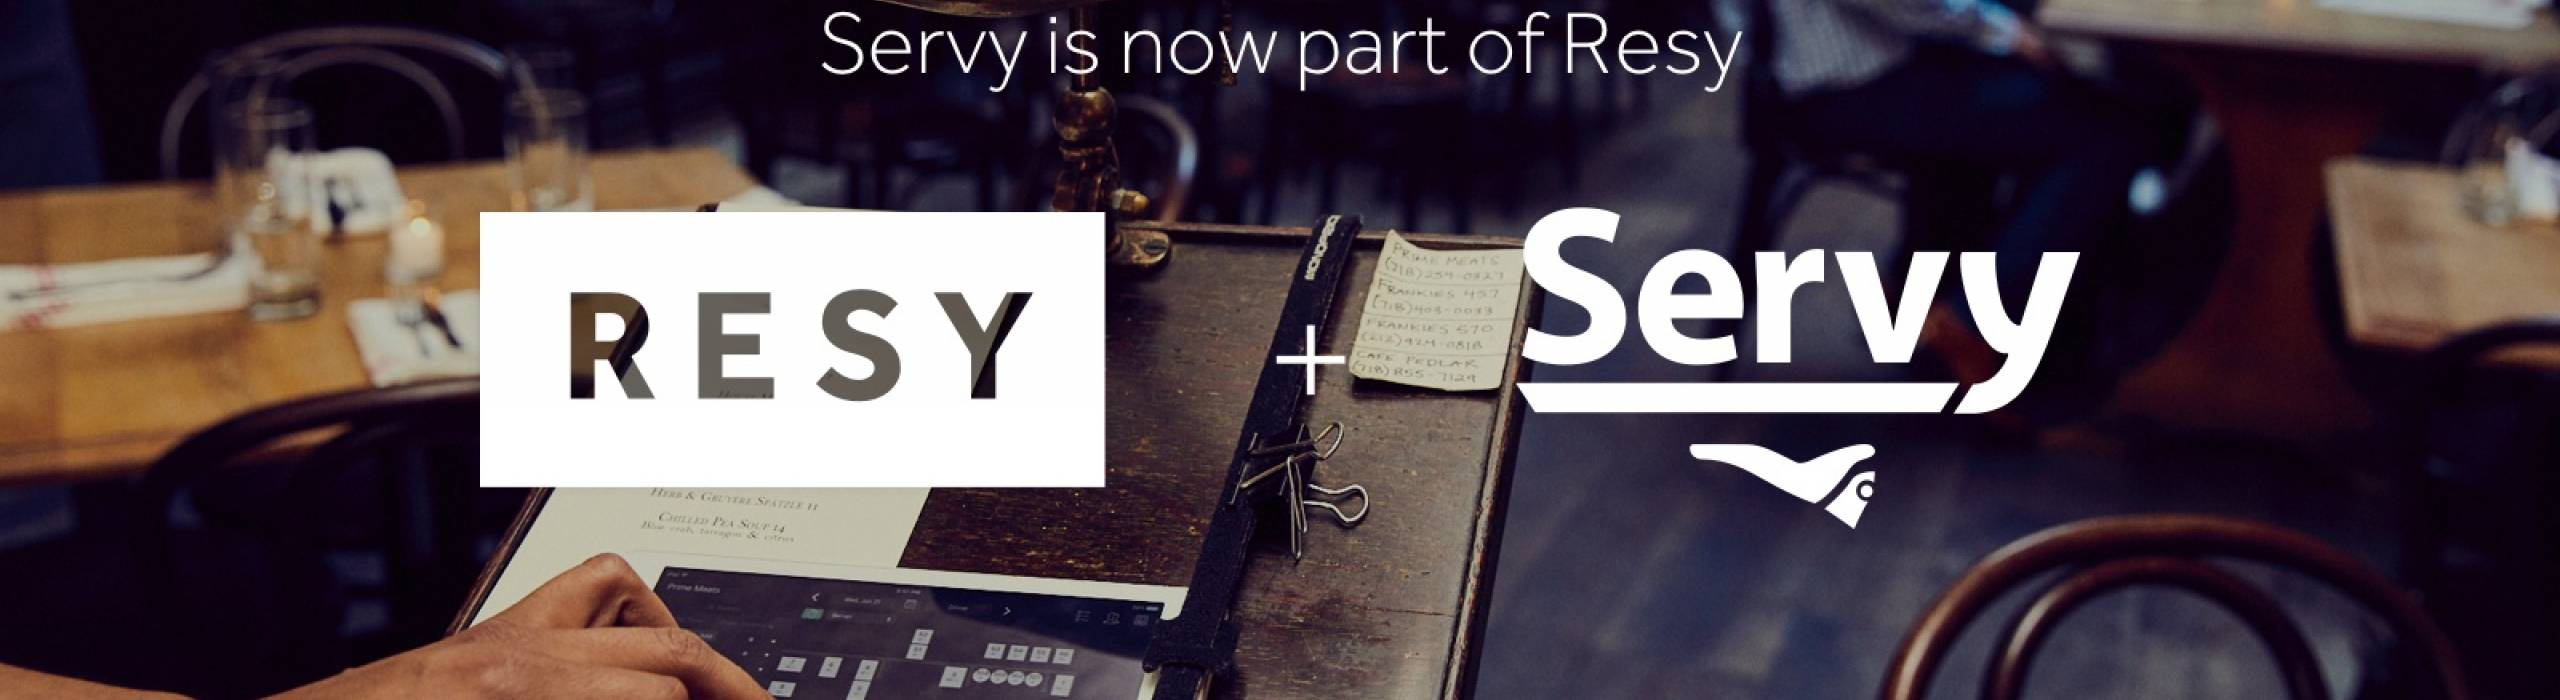 Servy is a start-up company founded by two Cornell alums.